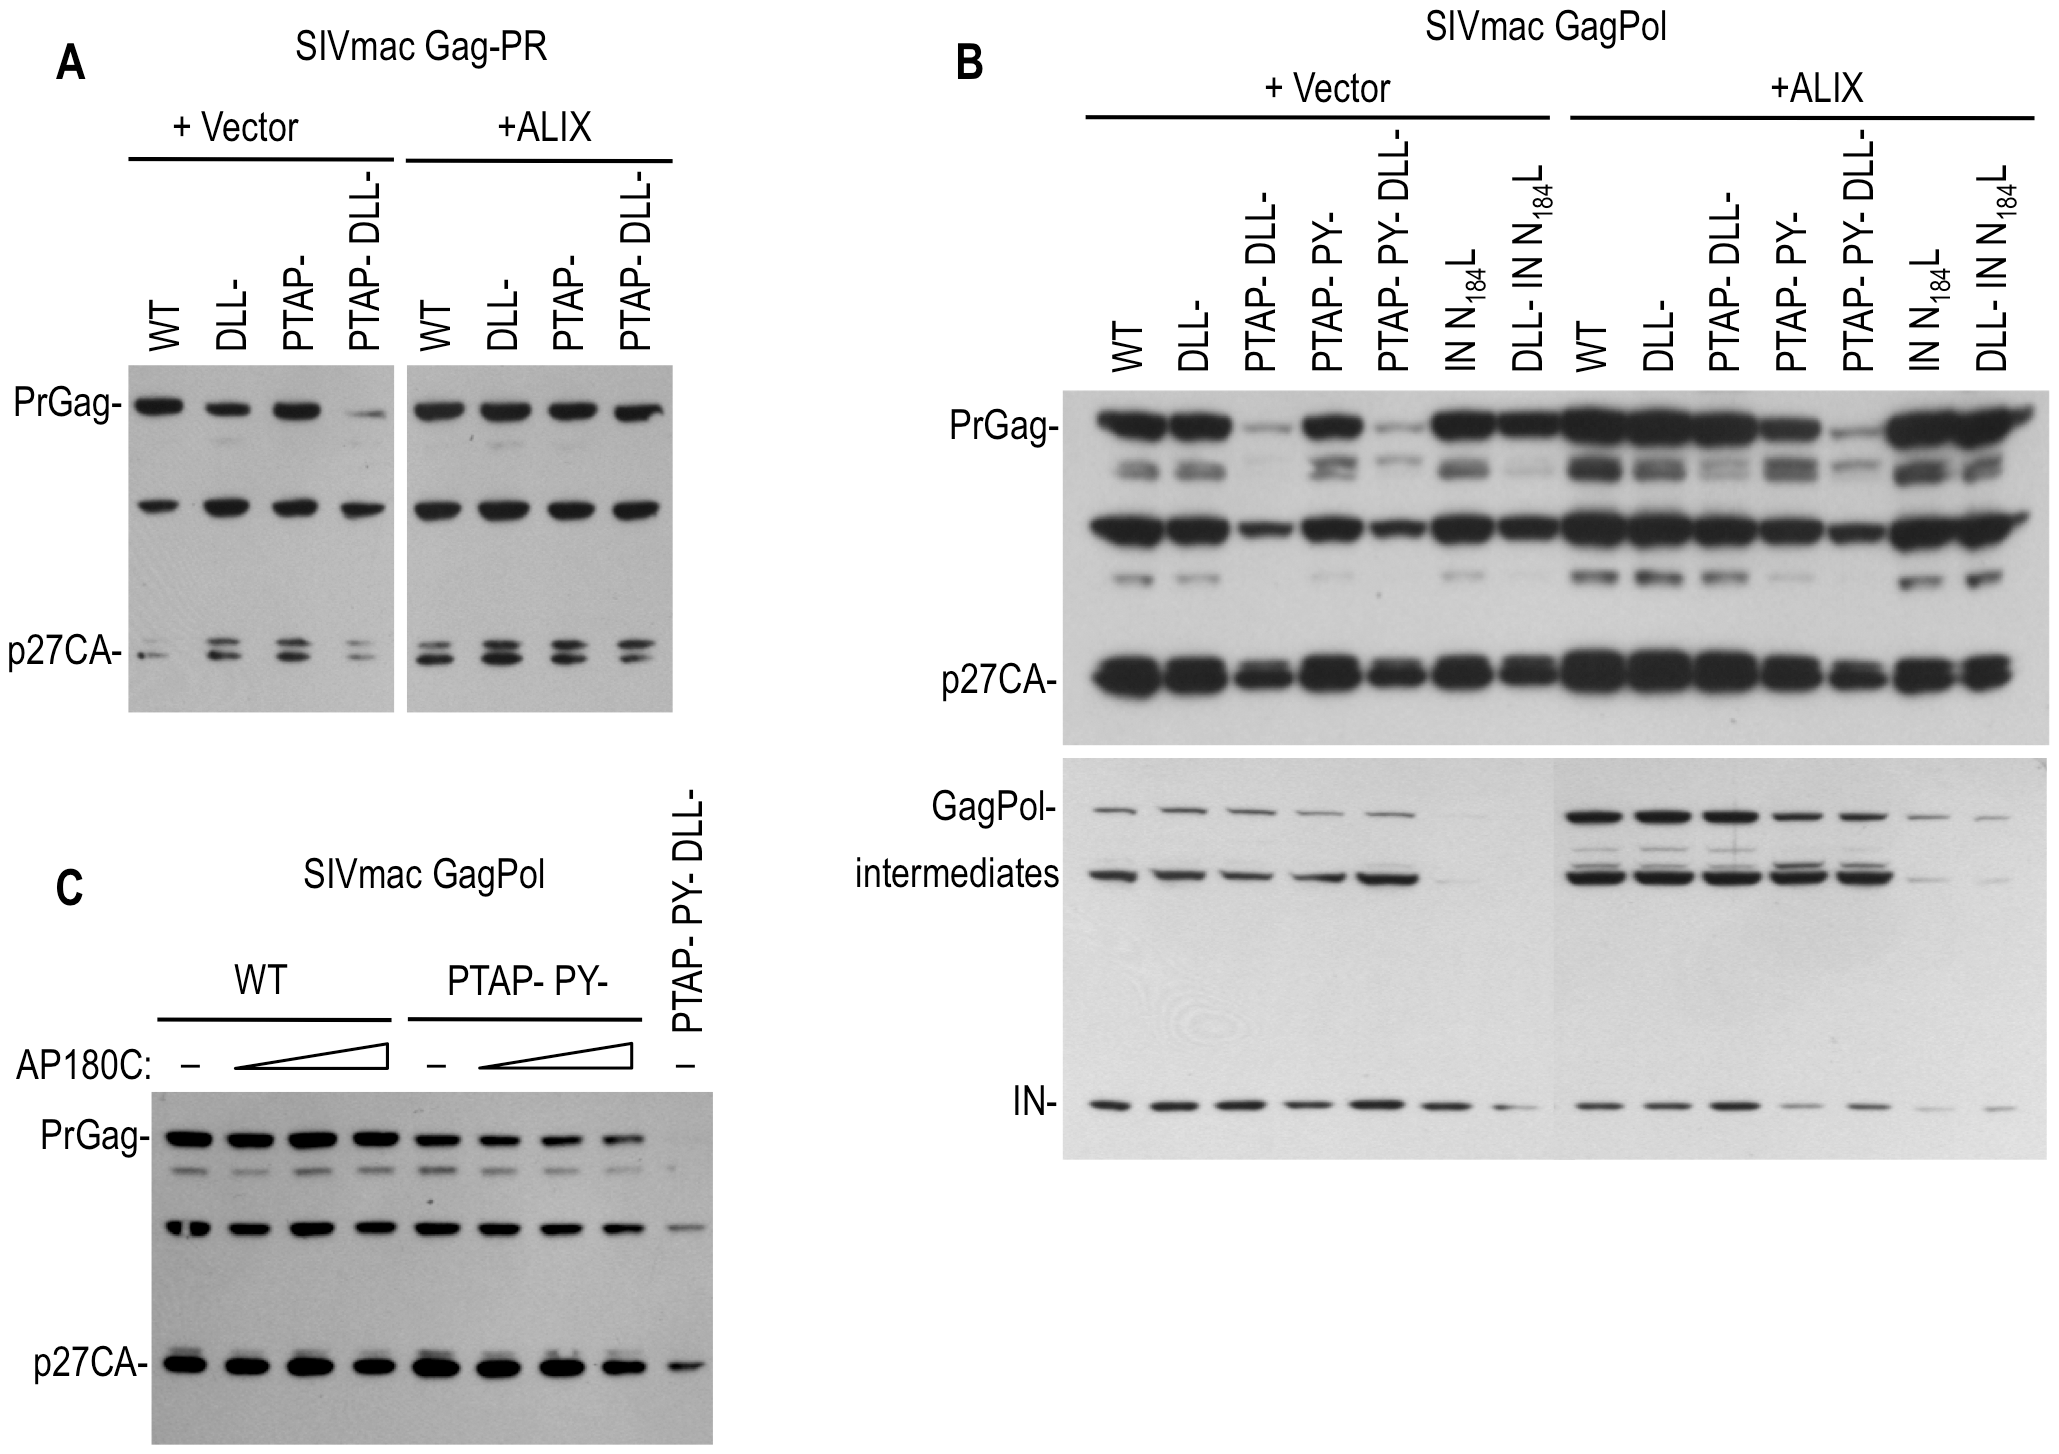 Effects of Clathrin, Tsg101 and ALIX on the levels of SIVmac Gag and Pol proteins.